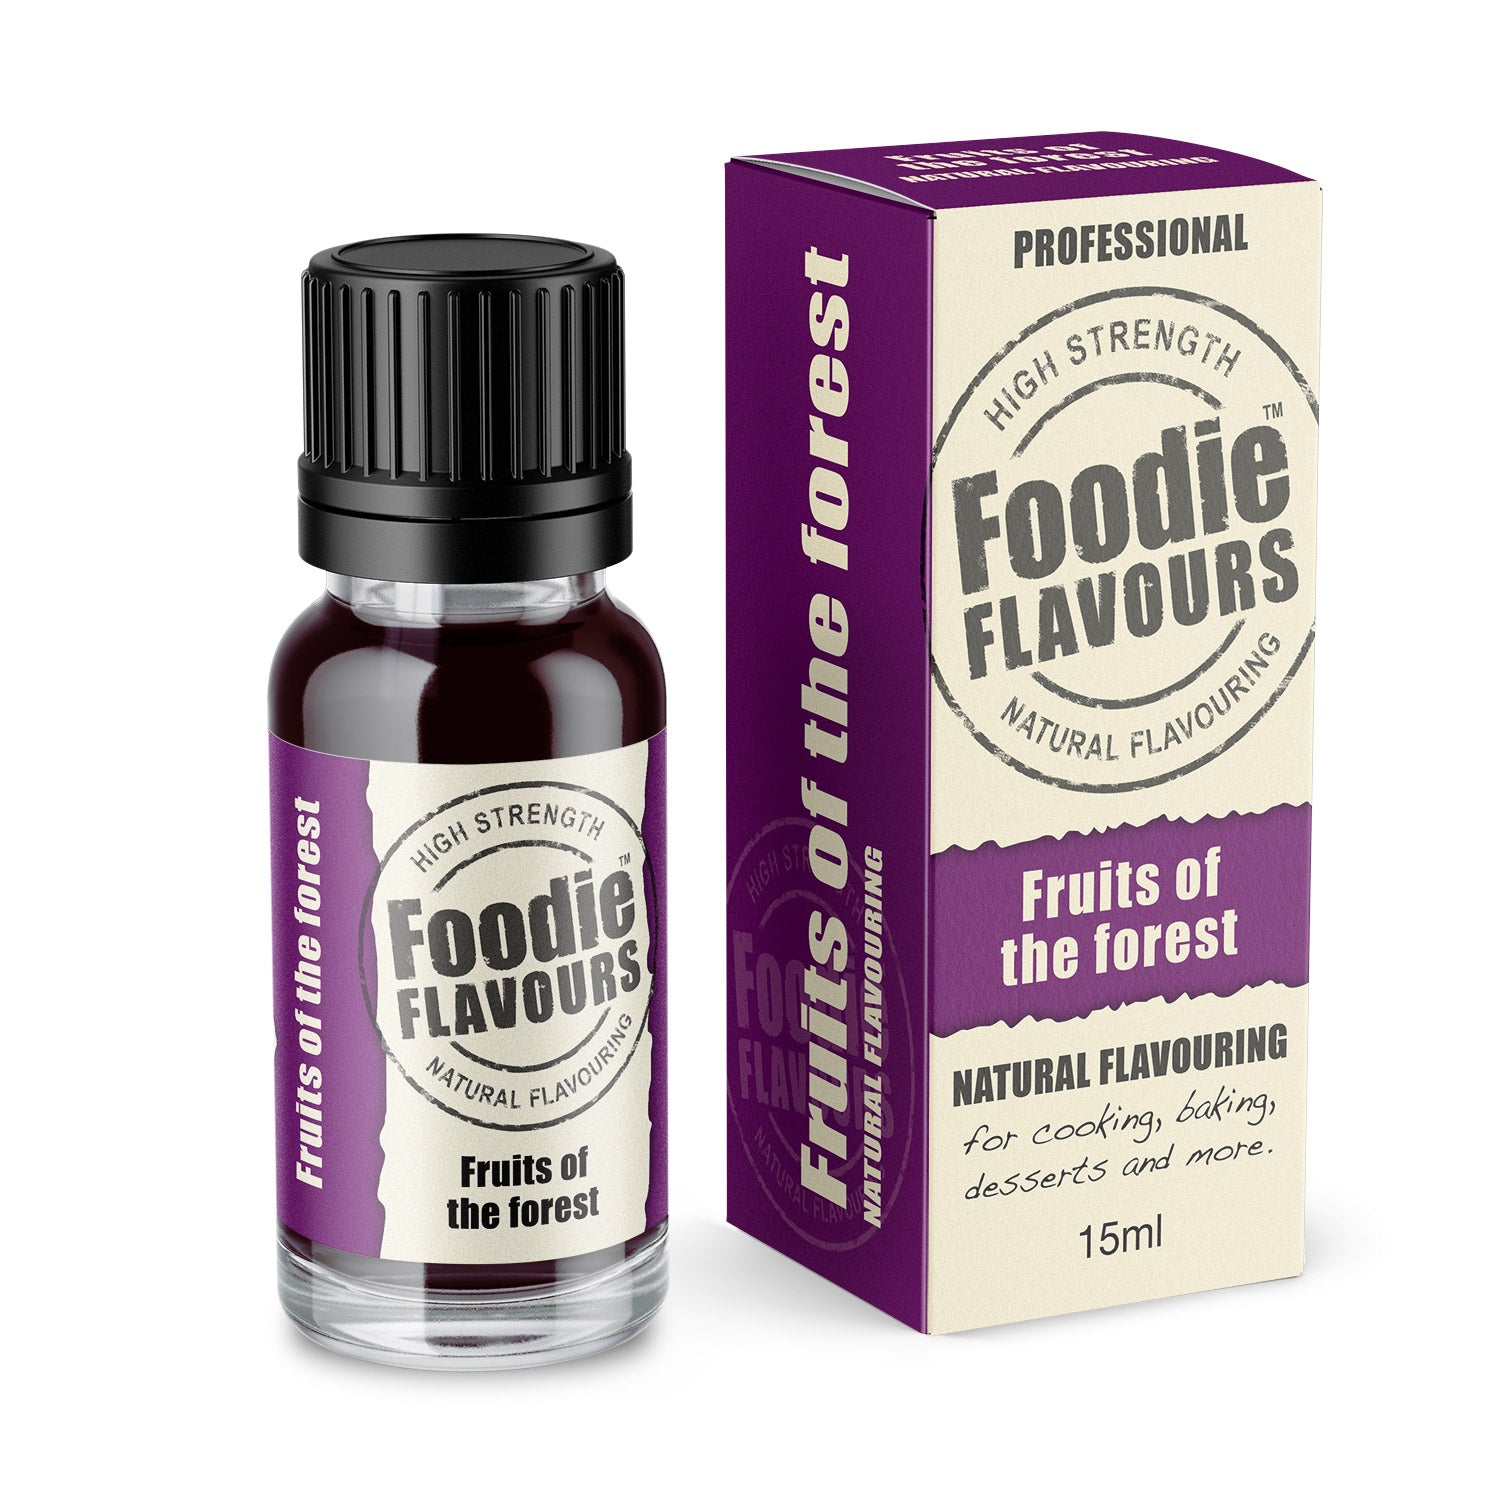 Fruits of the Forest Natural Flavouring 15ml